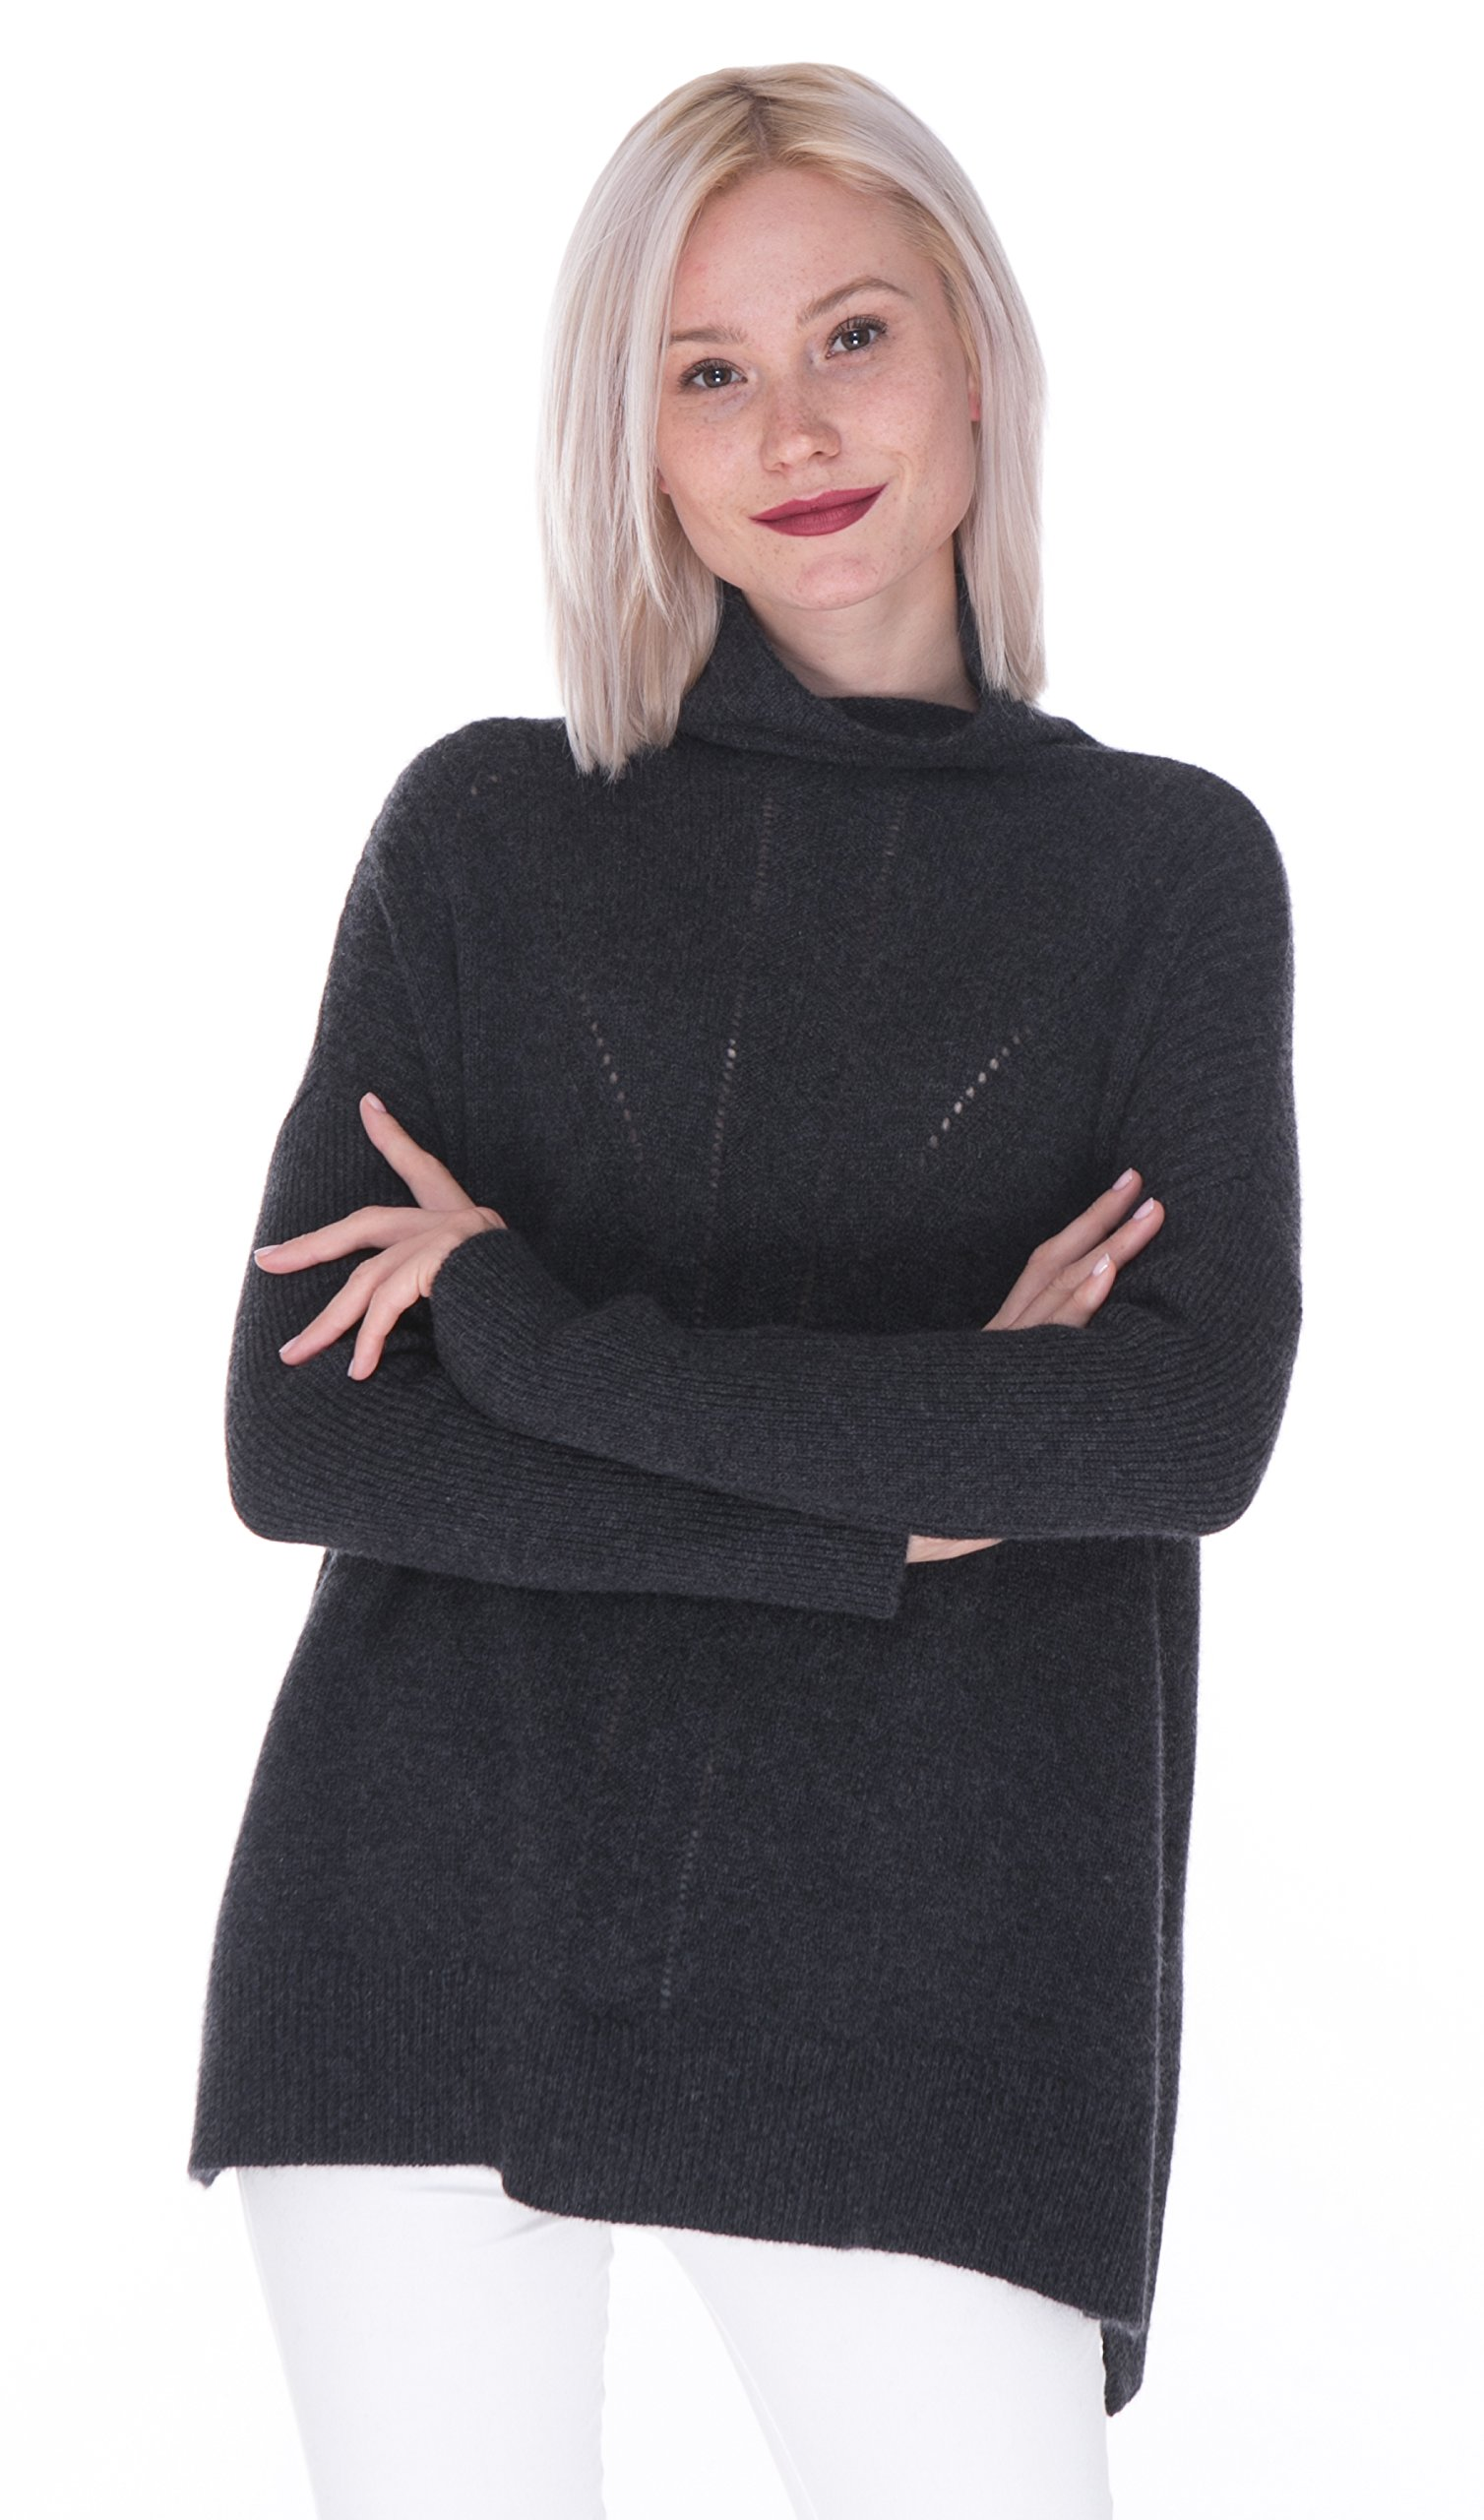 cashmere 4 U Women's 100% Cashmere Intarsia Knitted Long Sleeve Sweater Charcoal Large